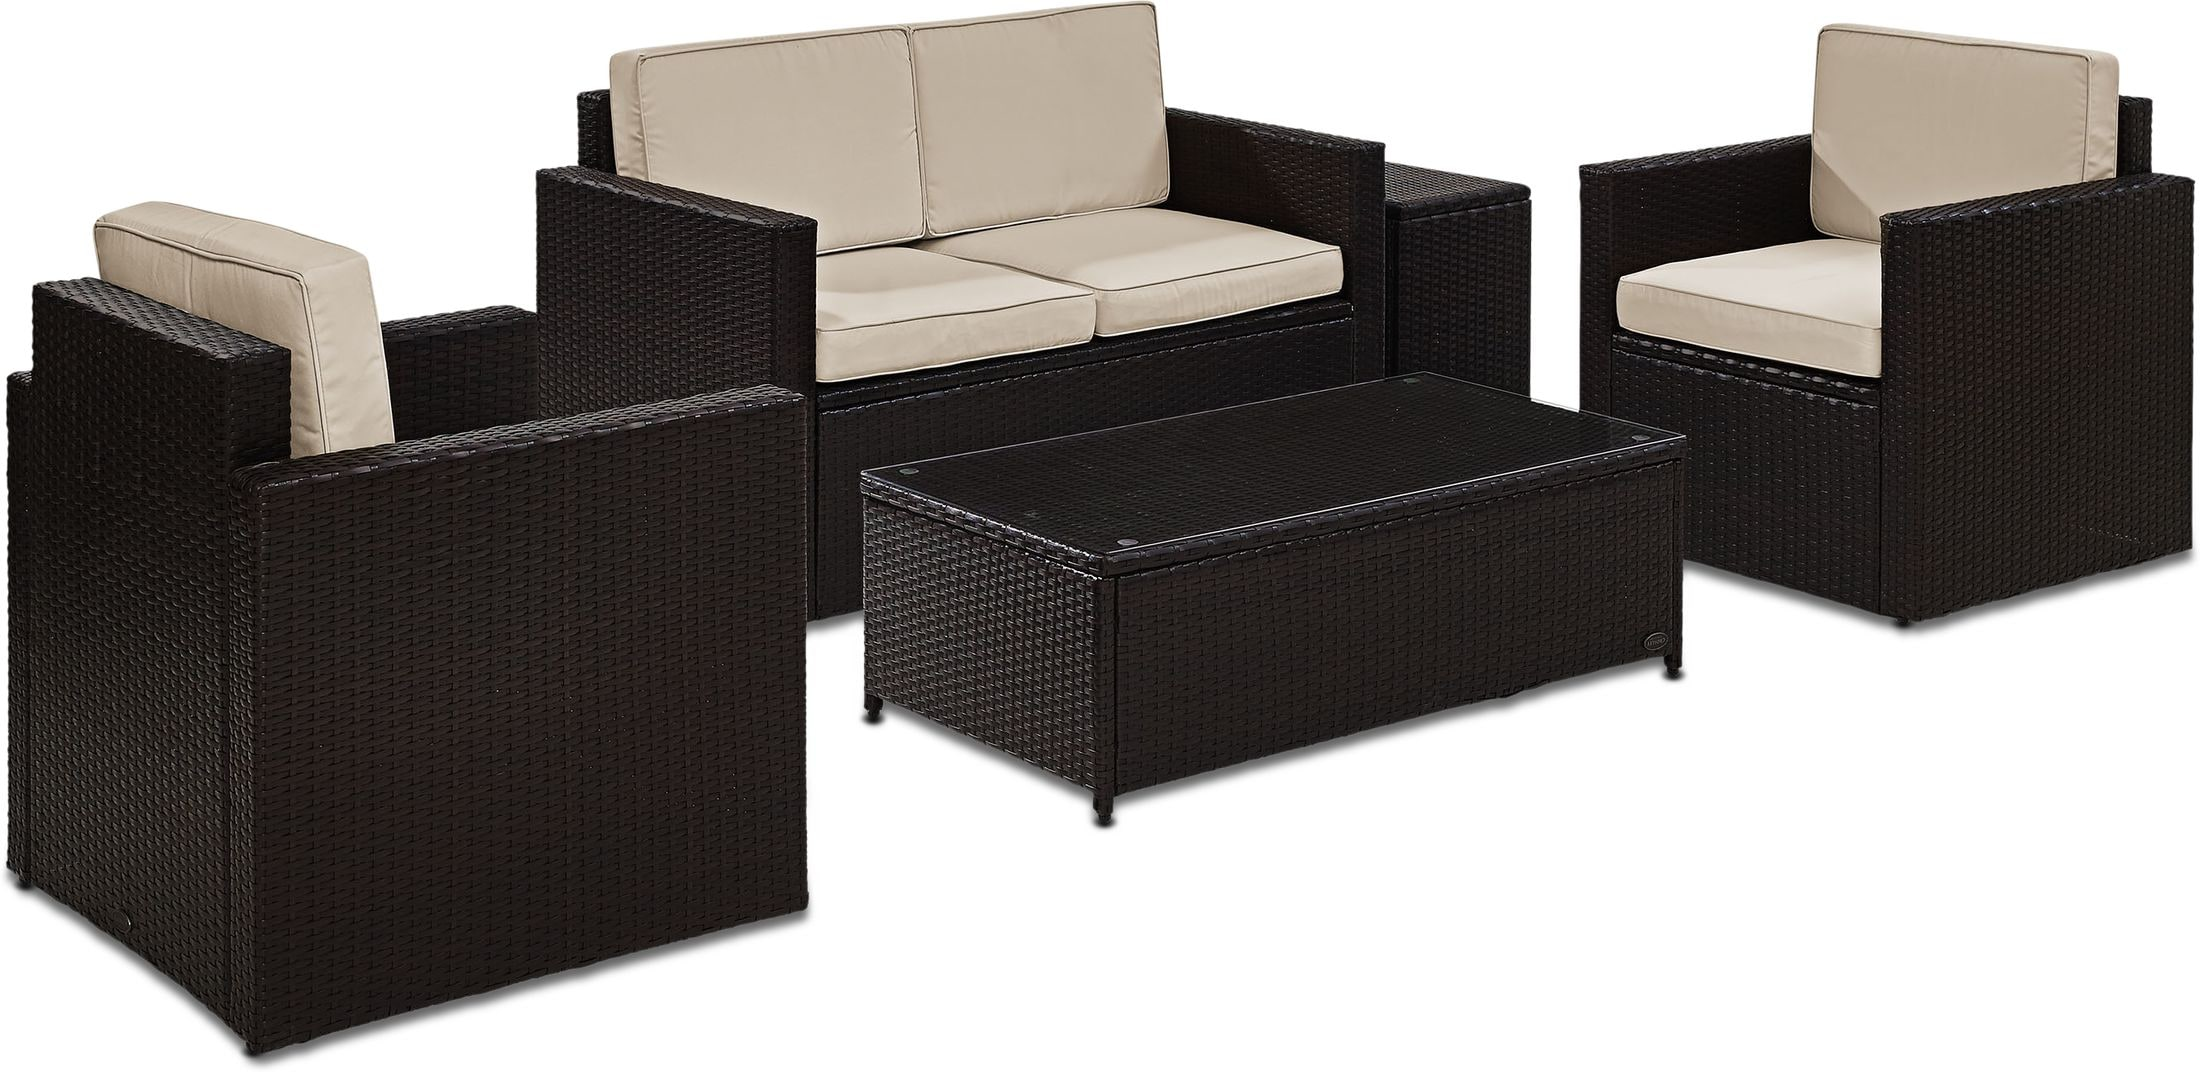 Outdoor Furniture - Aldo Outdoor Loveseat, 2 Chairs, Coffee Table, and End Table Set